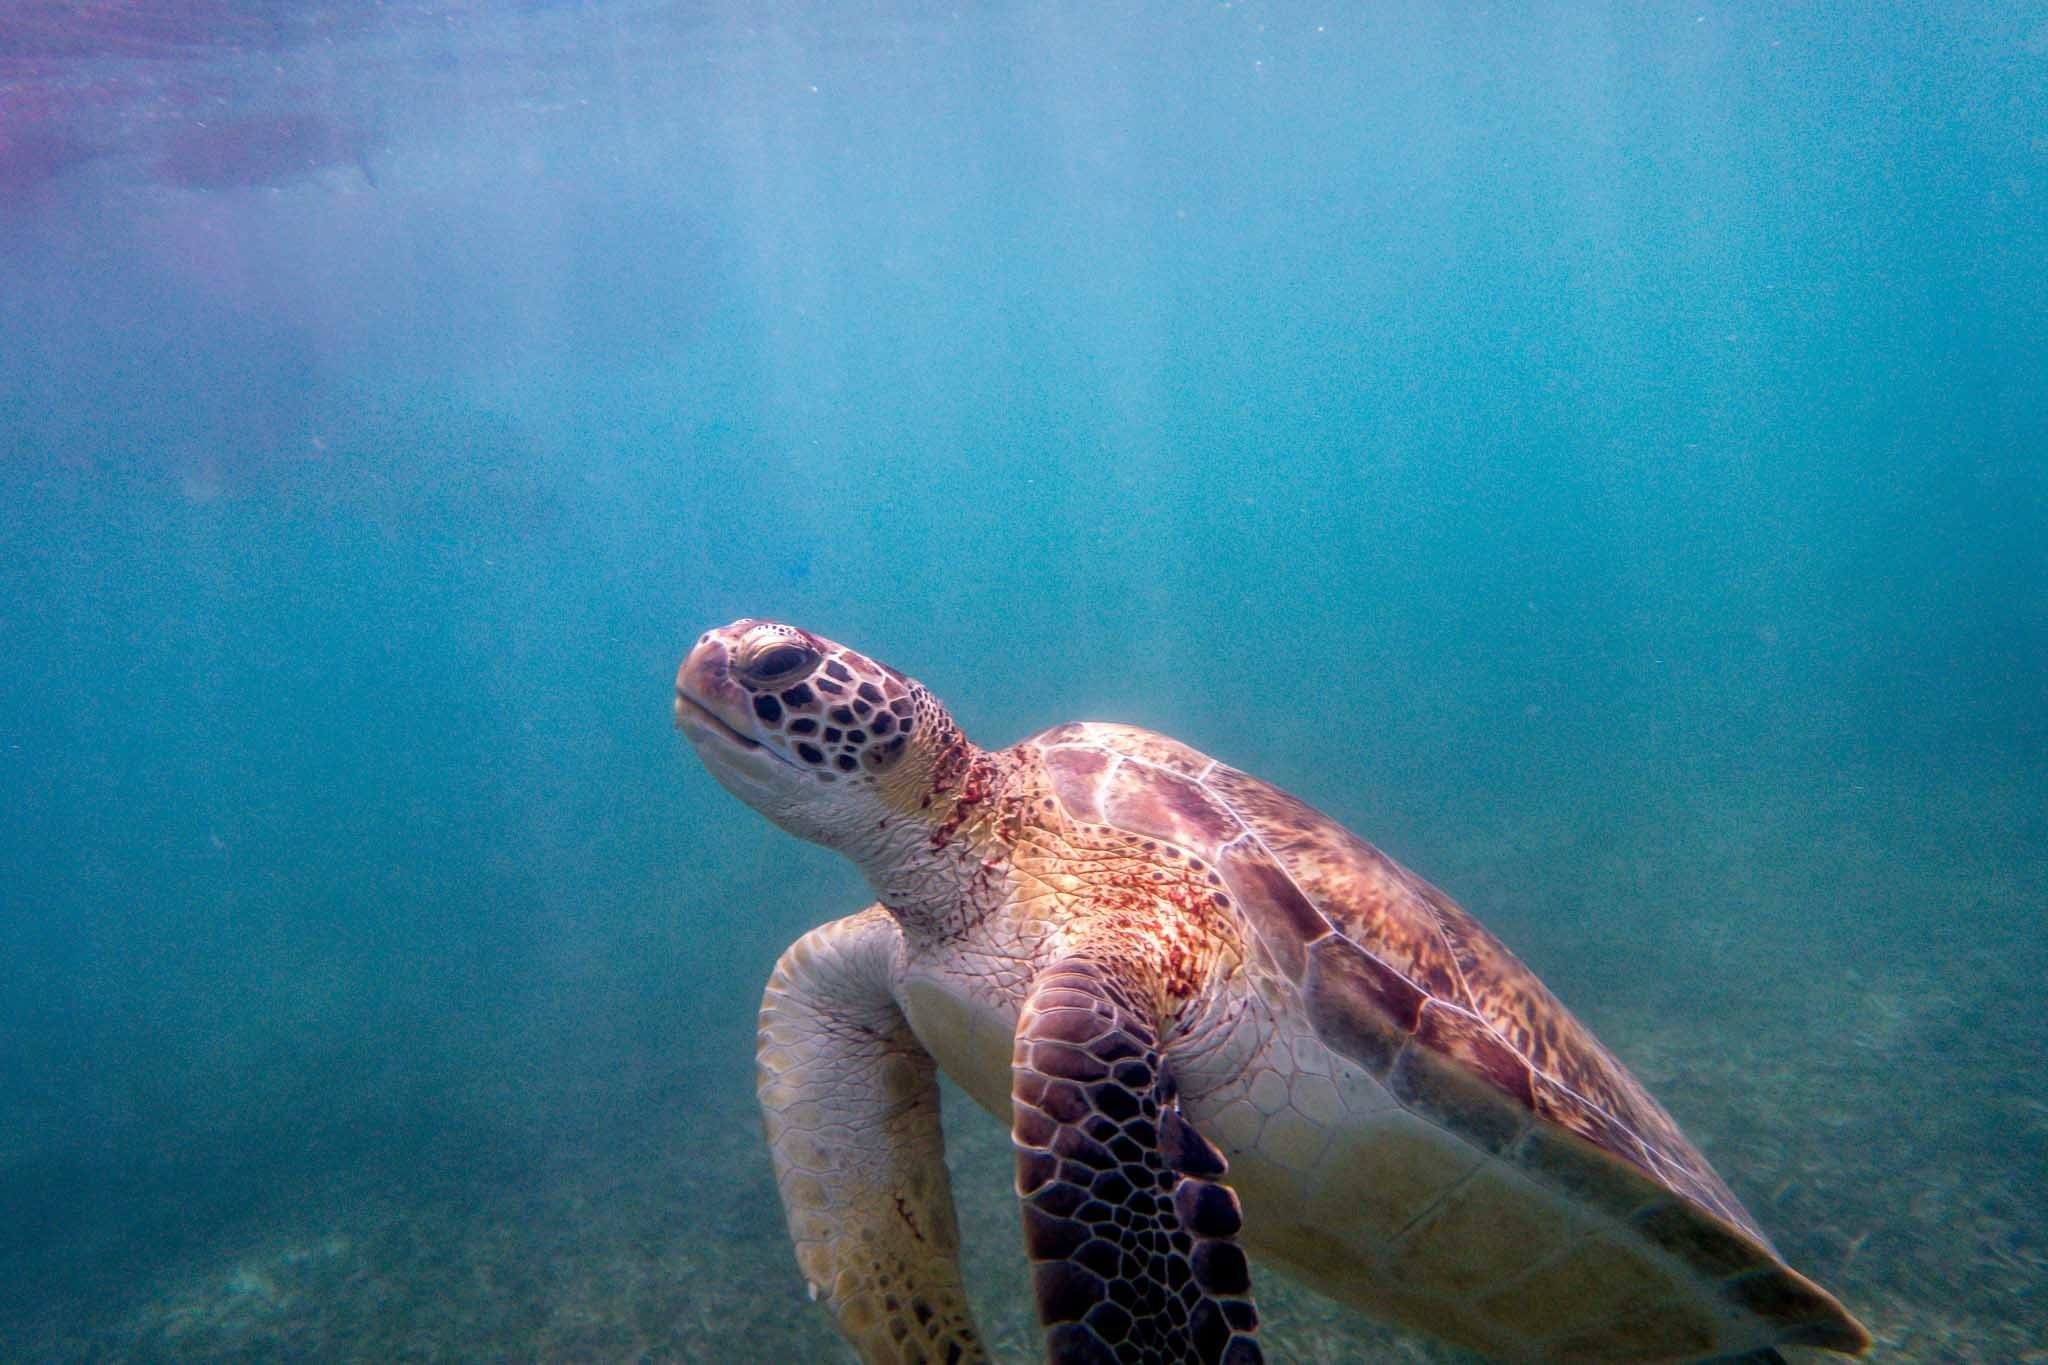 One of the Akumal turtles coming up for air during our Akumal snorkeling adventure